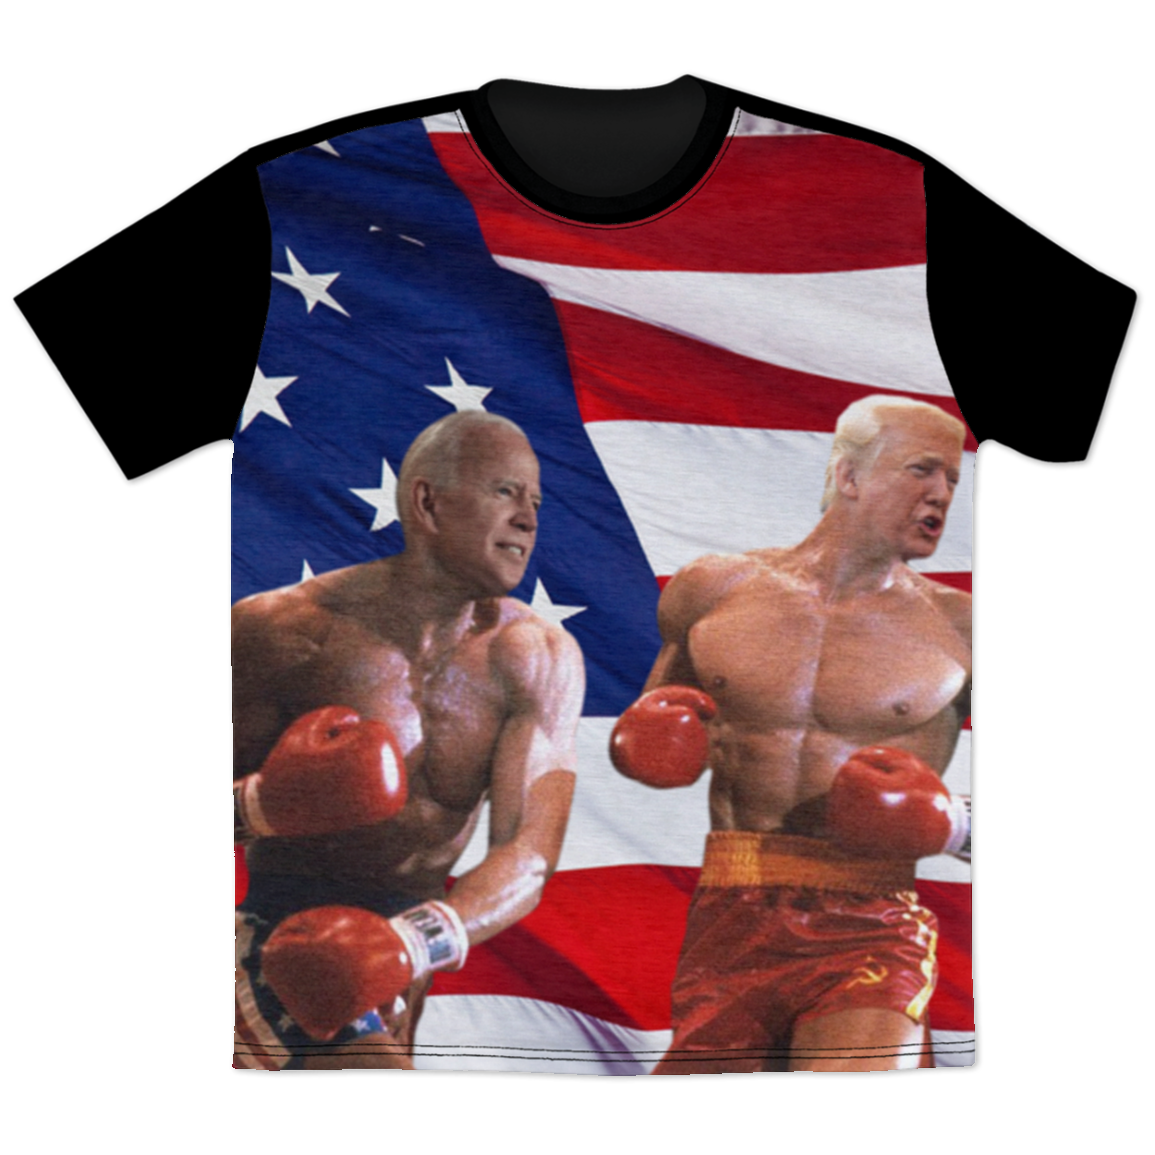 Politics - Biden punching Trump All Over Print T-Shirt